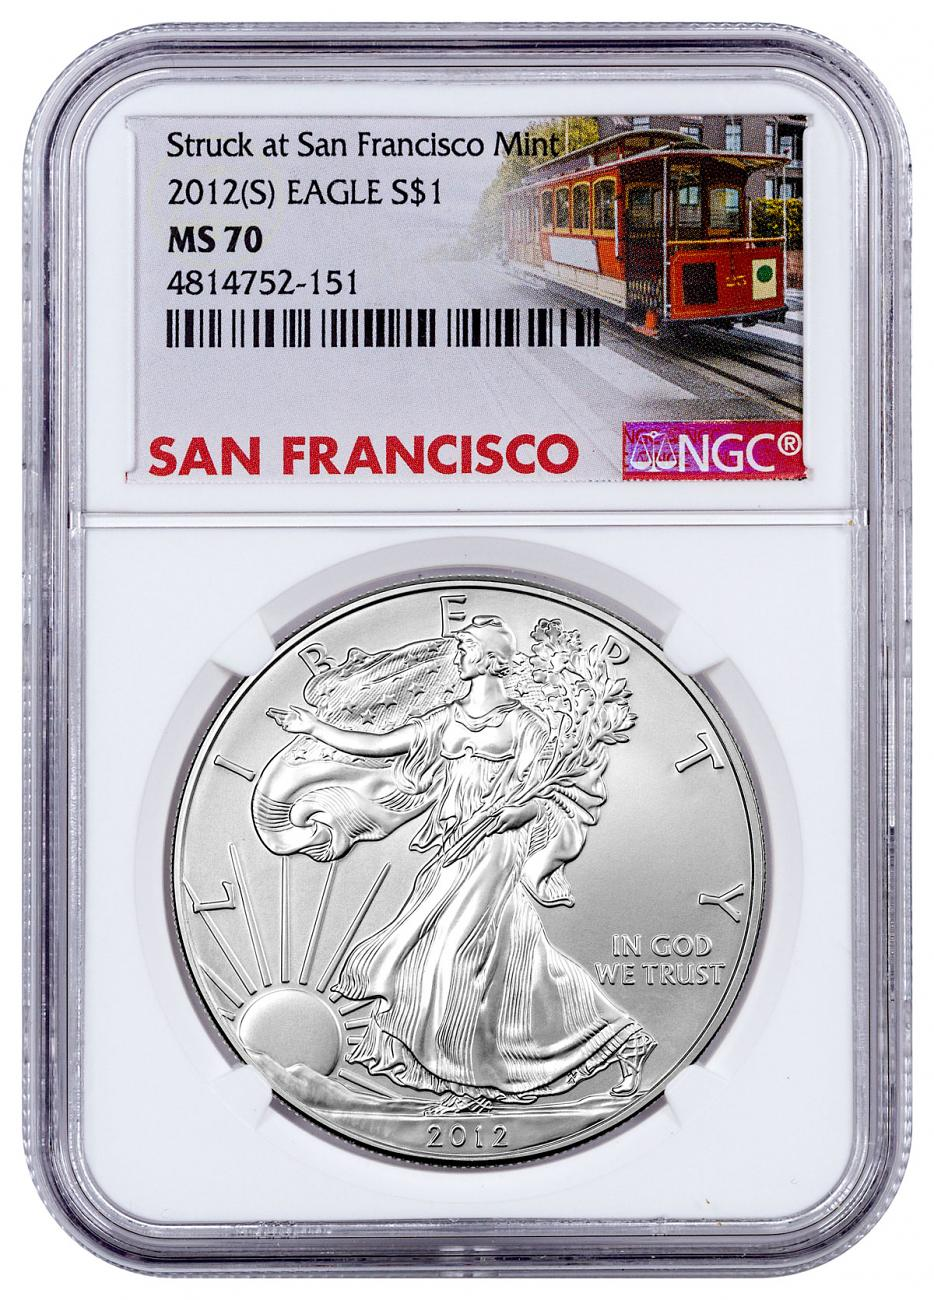 2012-(S) Silver Eagle Struck at San Francisco NGC MS70 Trolley Label